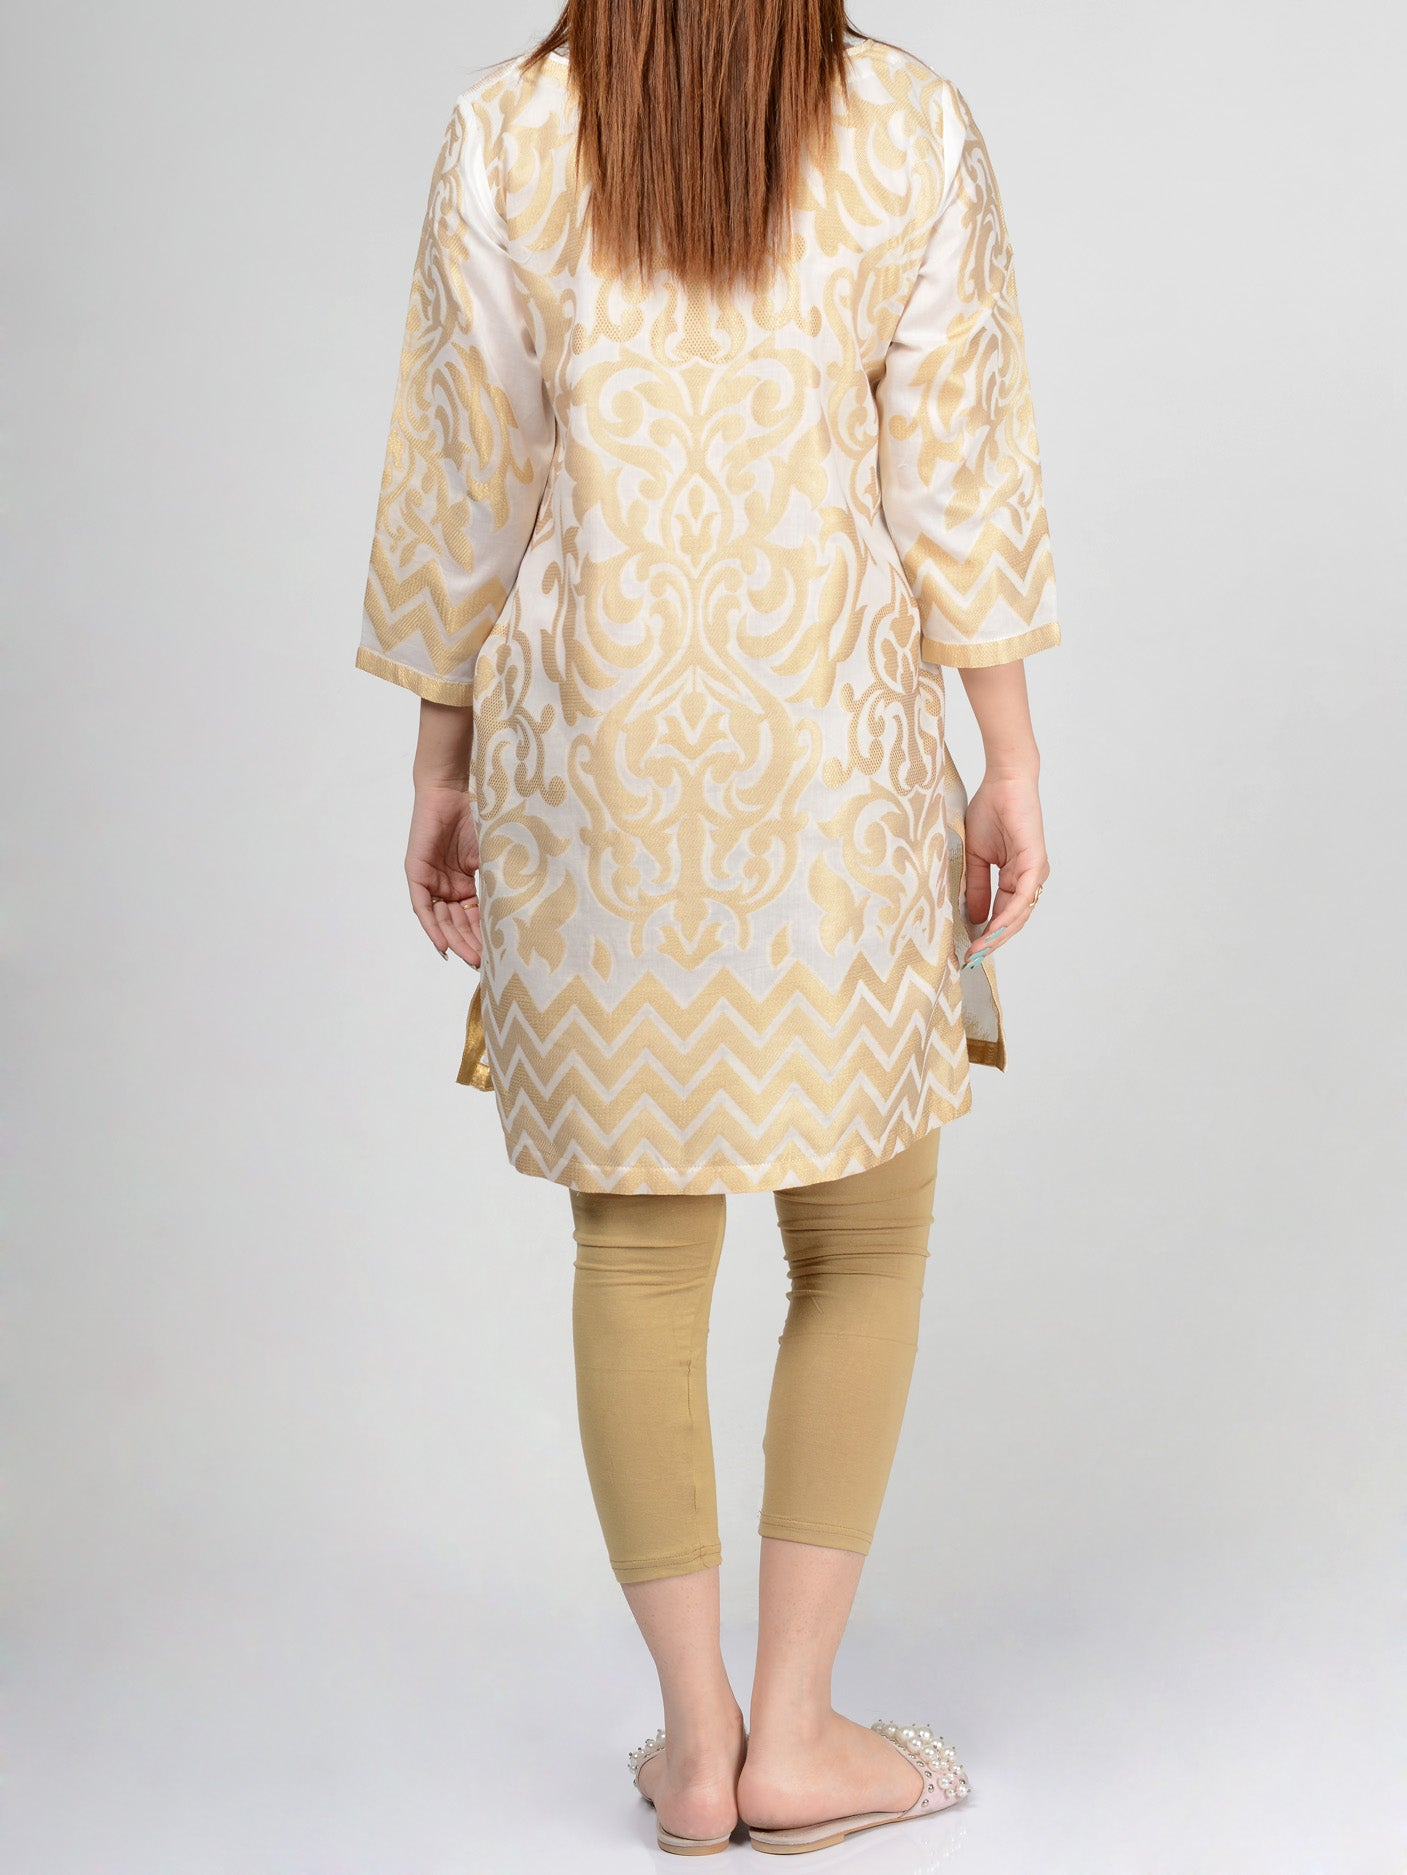 Limelight Pret Embroidered Jacquard Shirt p0248 shop Online in Pakistan | Limelight.pk